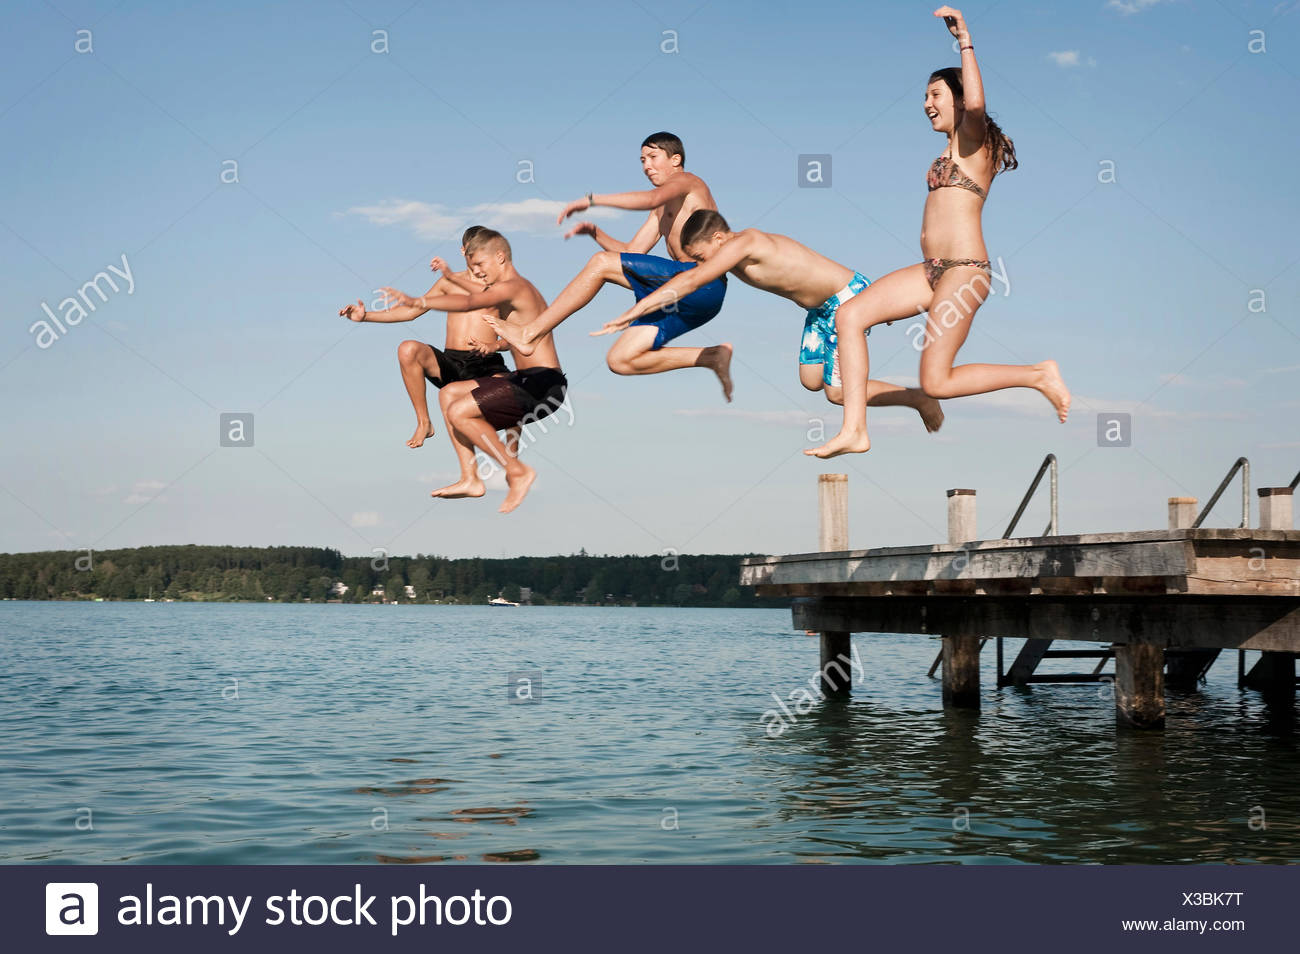 Five teenagers jumping from a jetty into lake - Stock Image